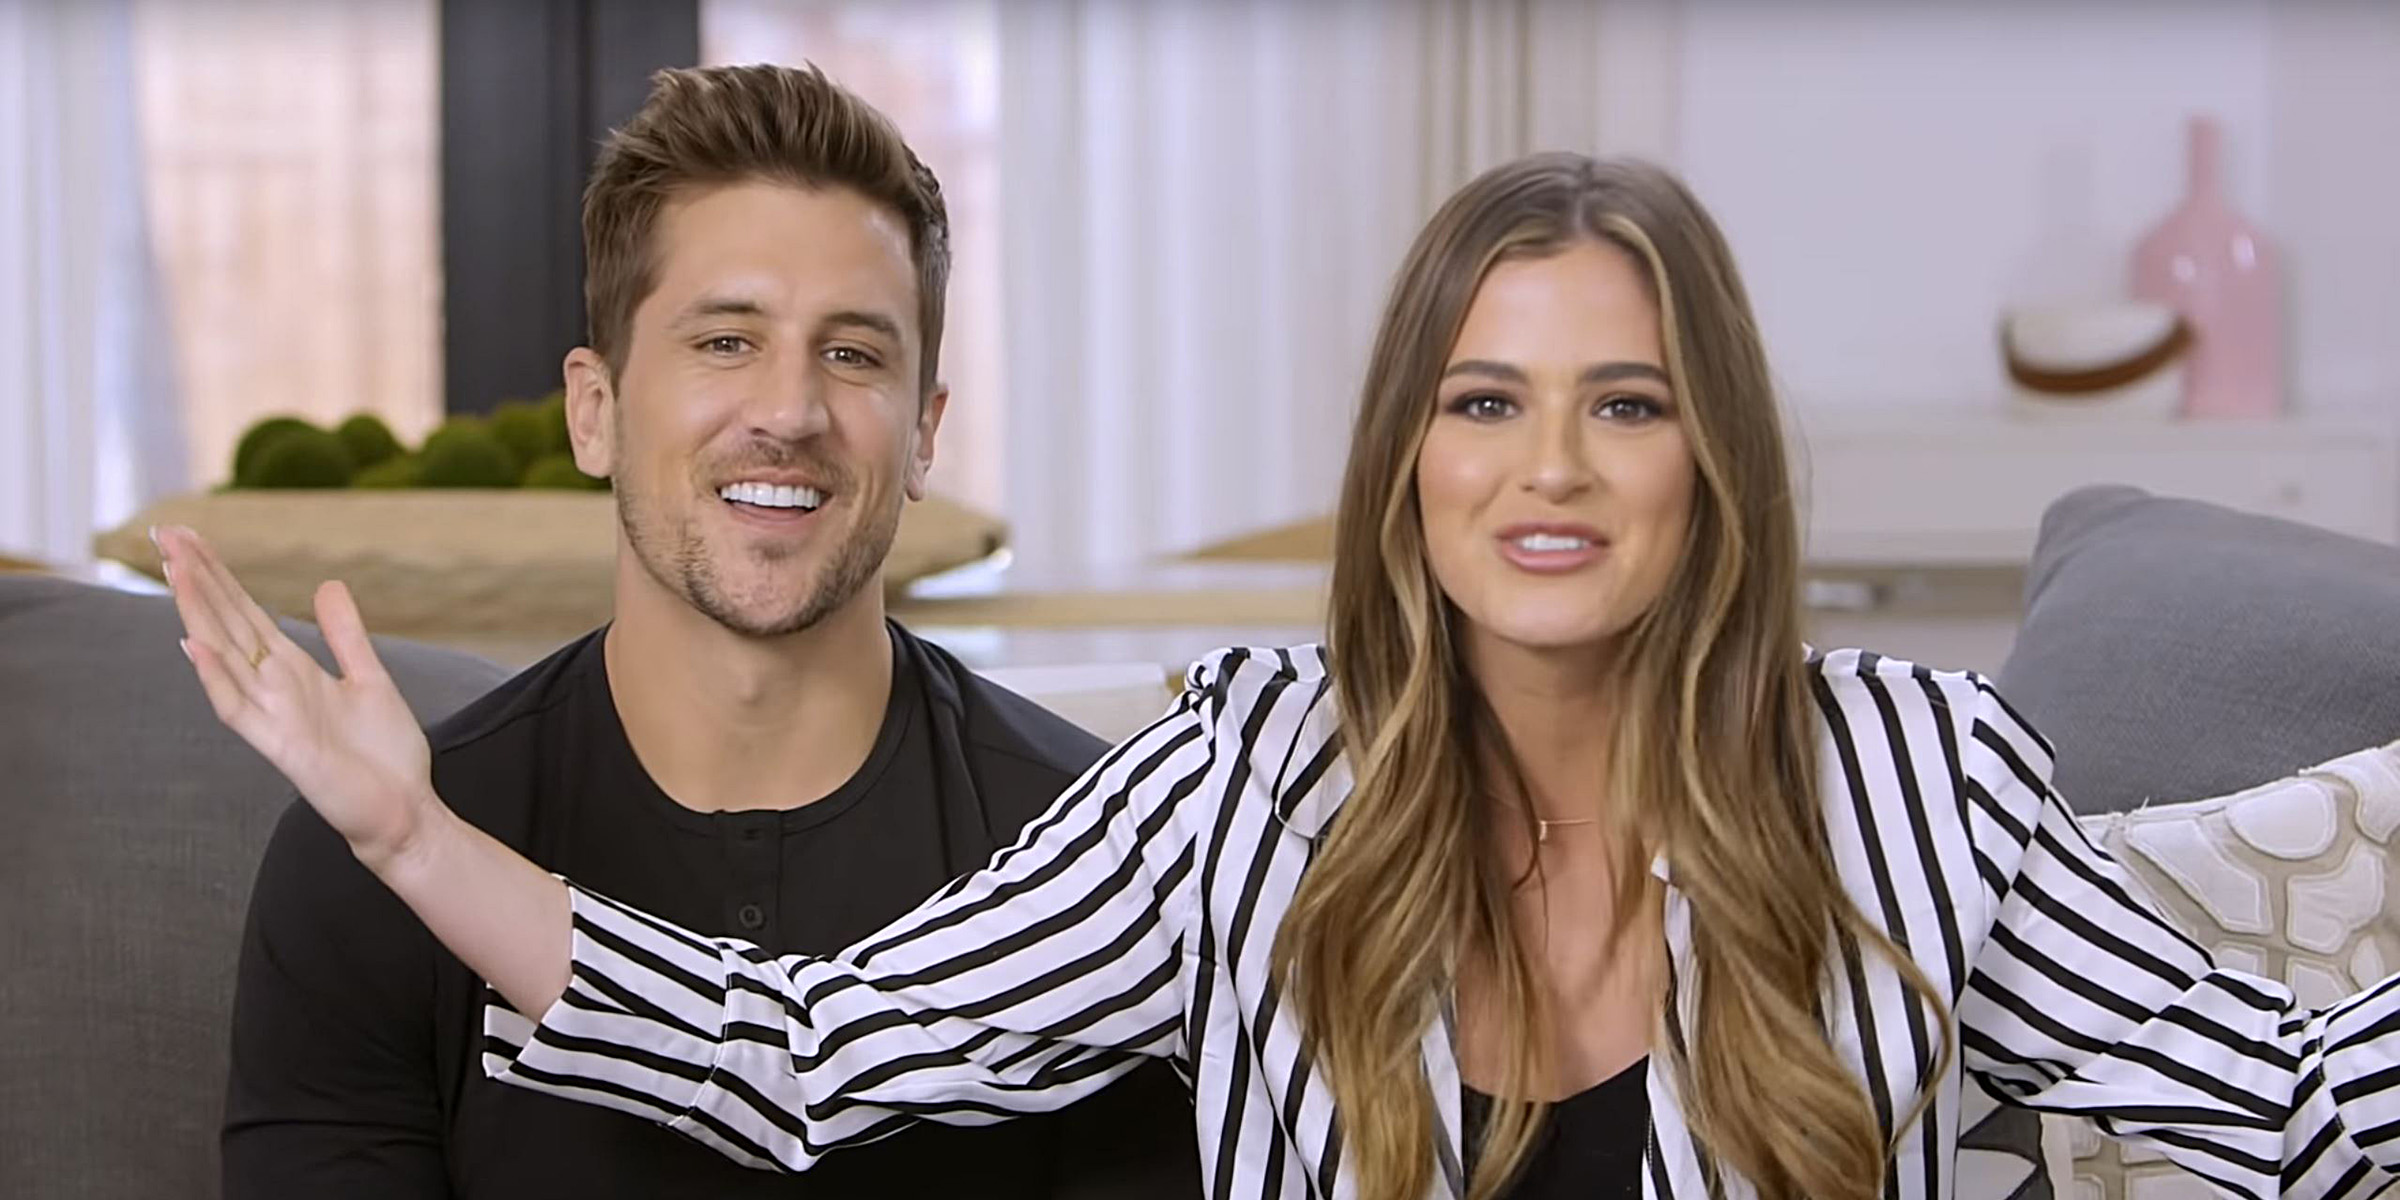 JoJo and Jordan find their home-rehab reality